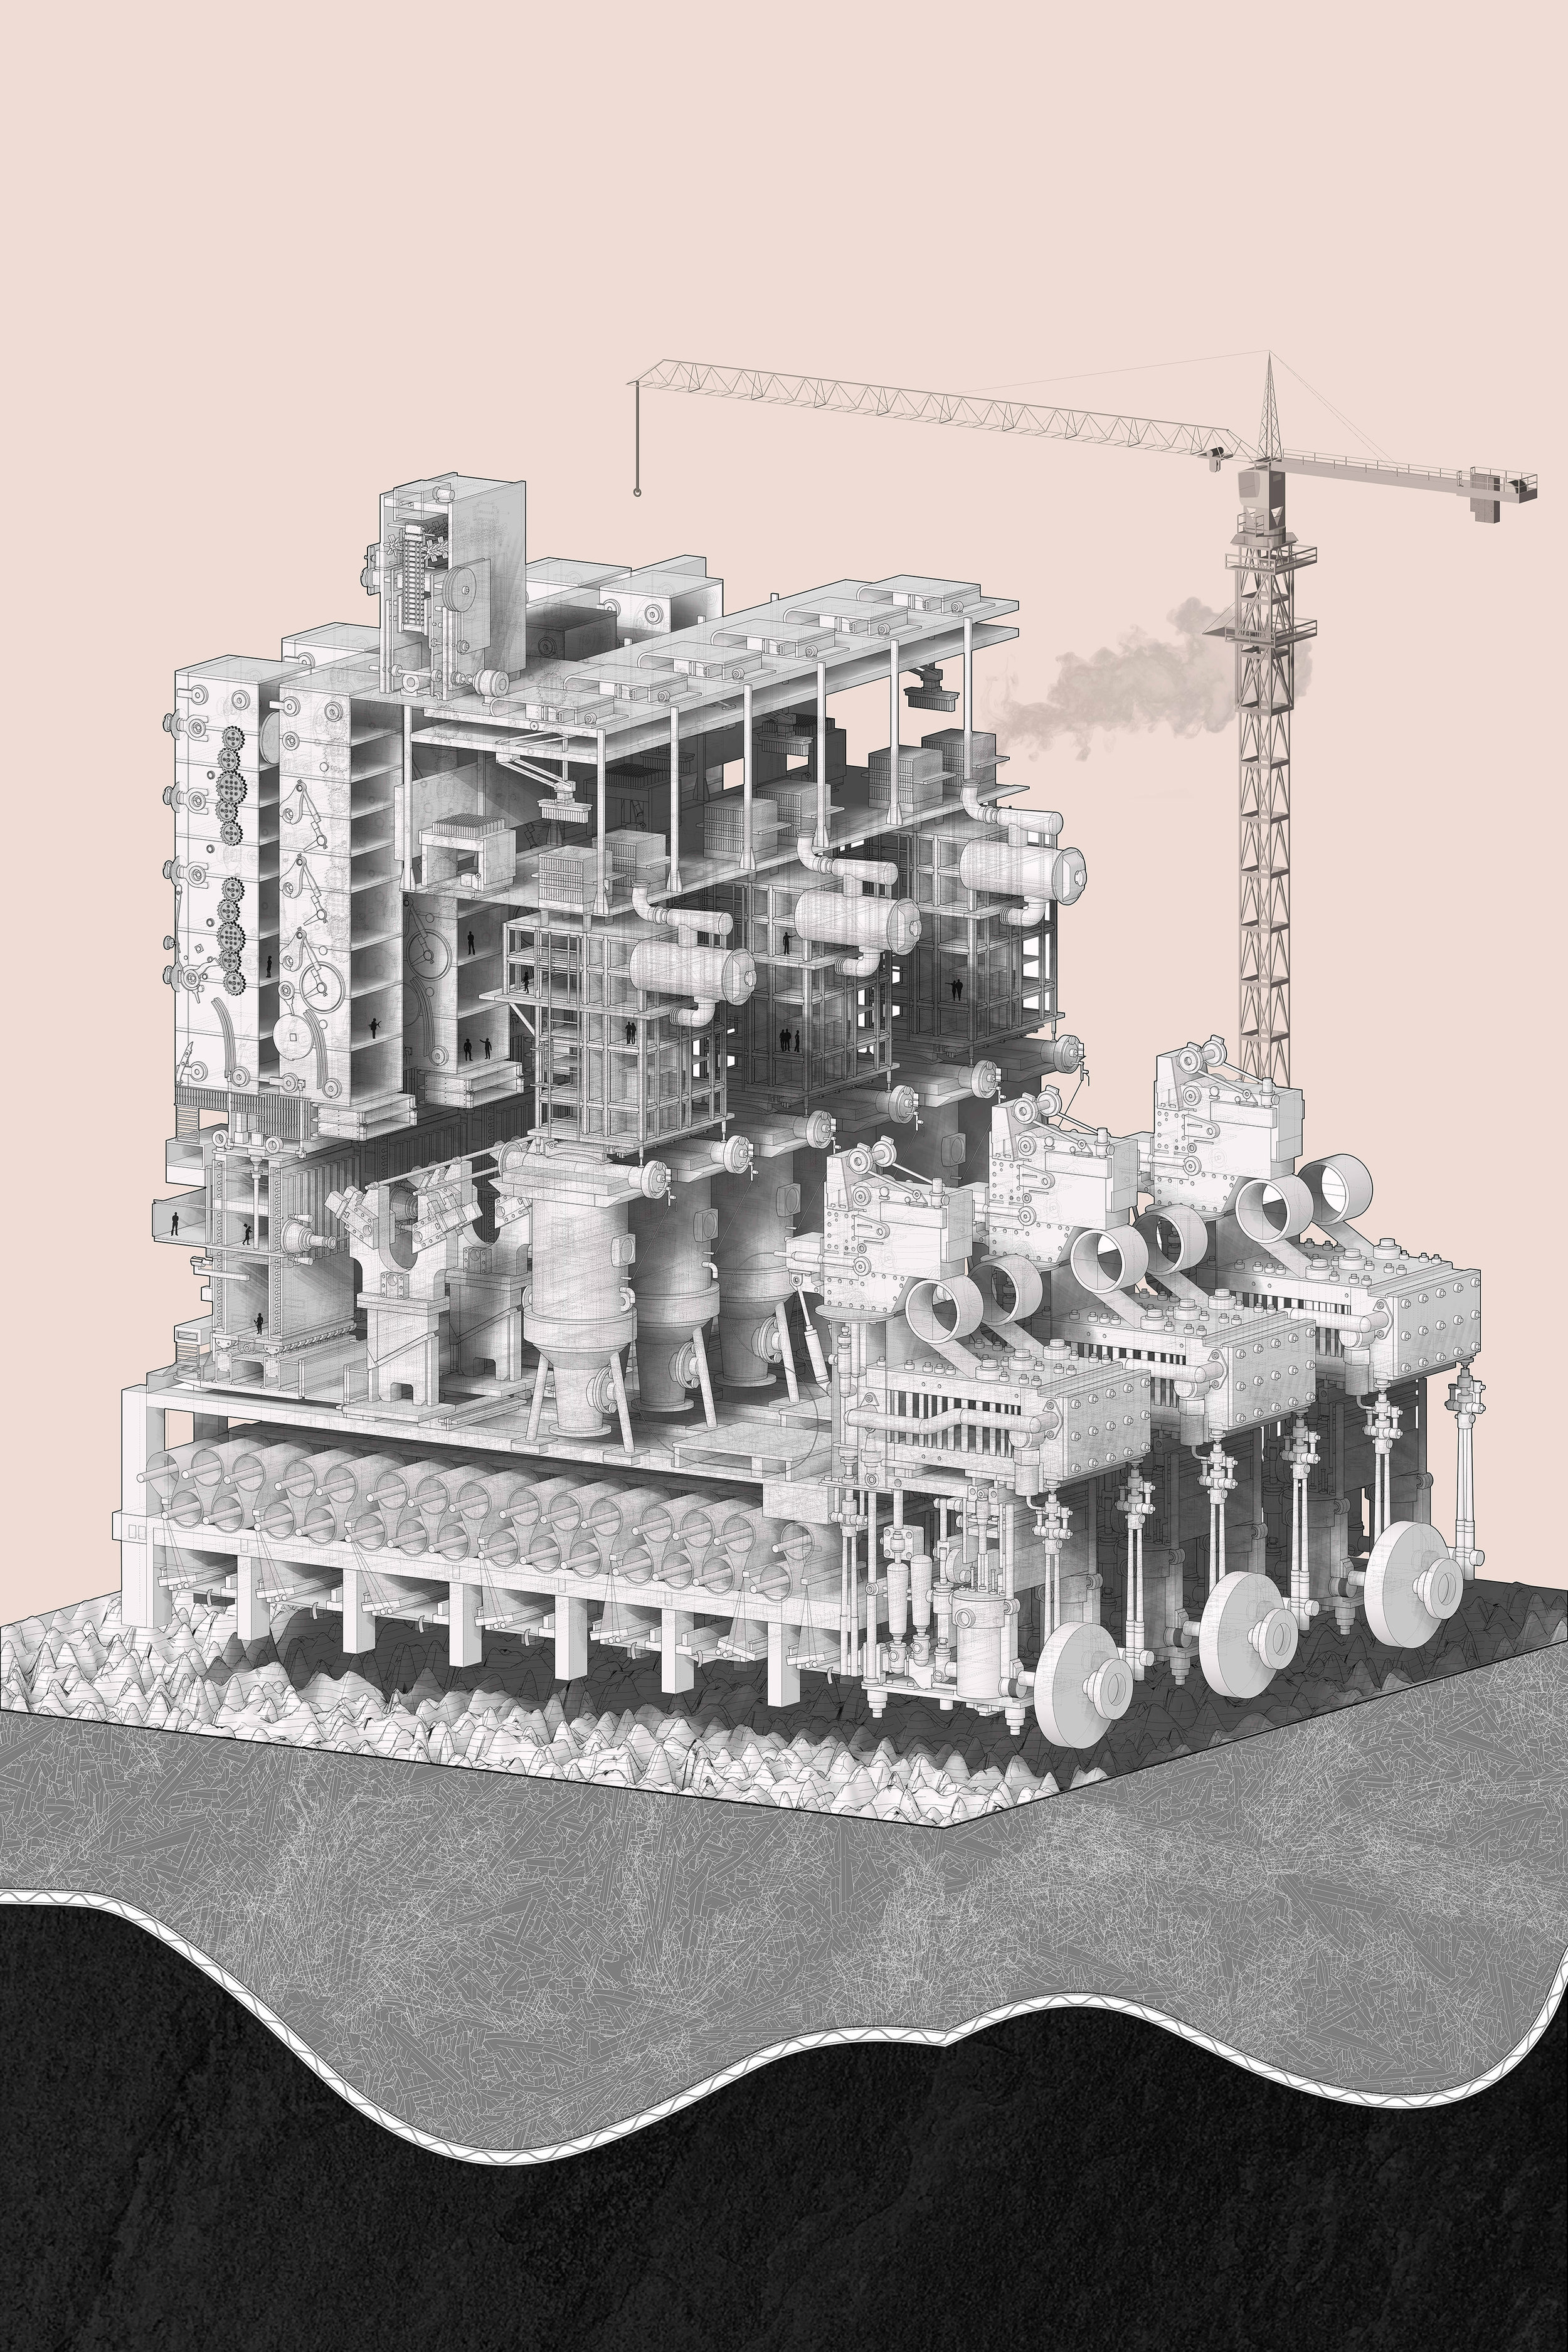 001_Large Elevation Perspective-small.jpg